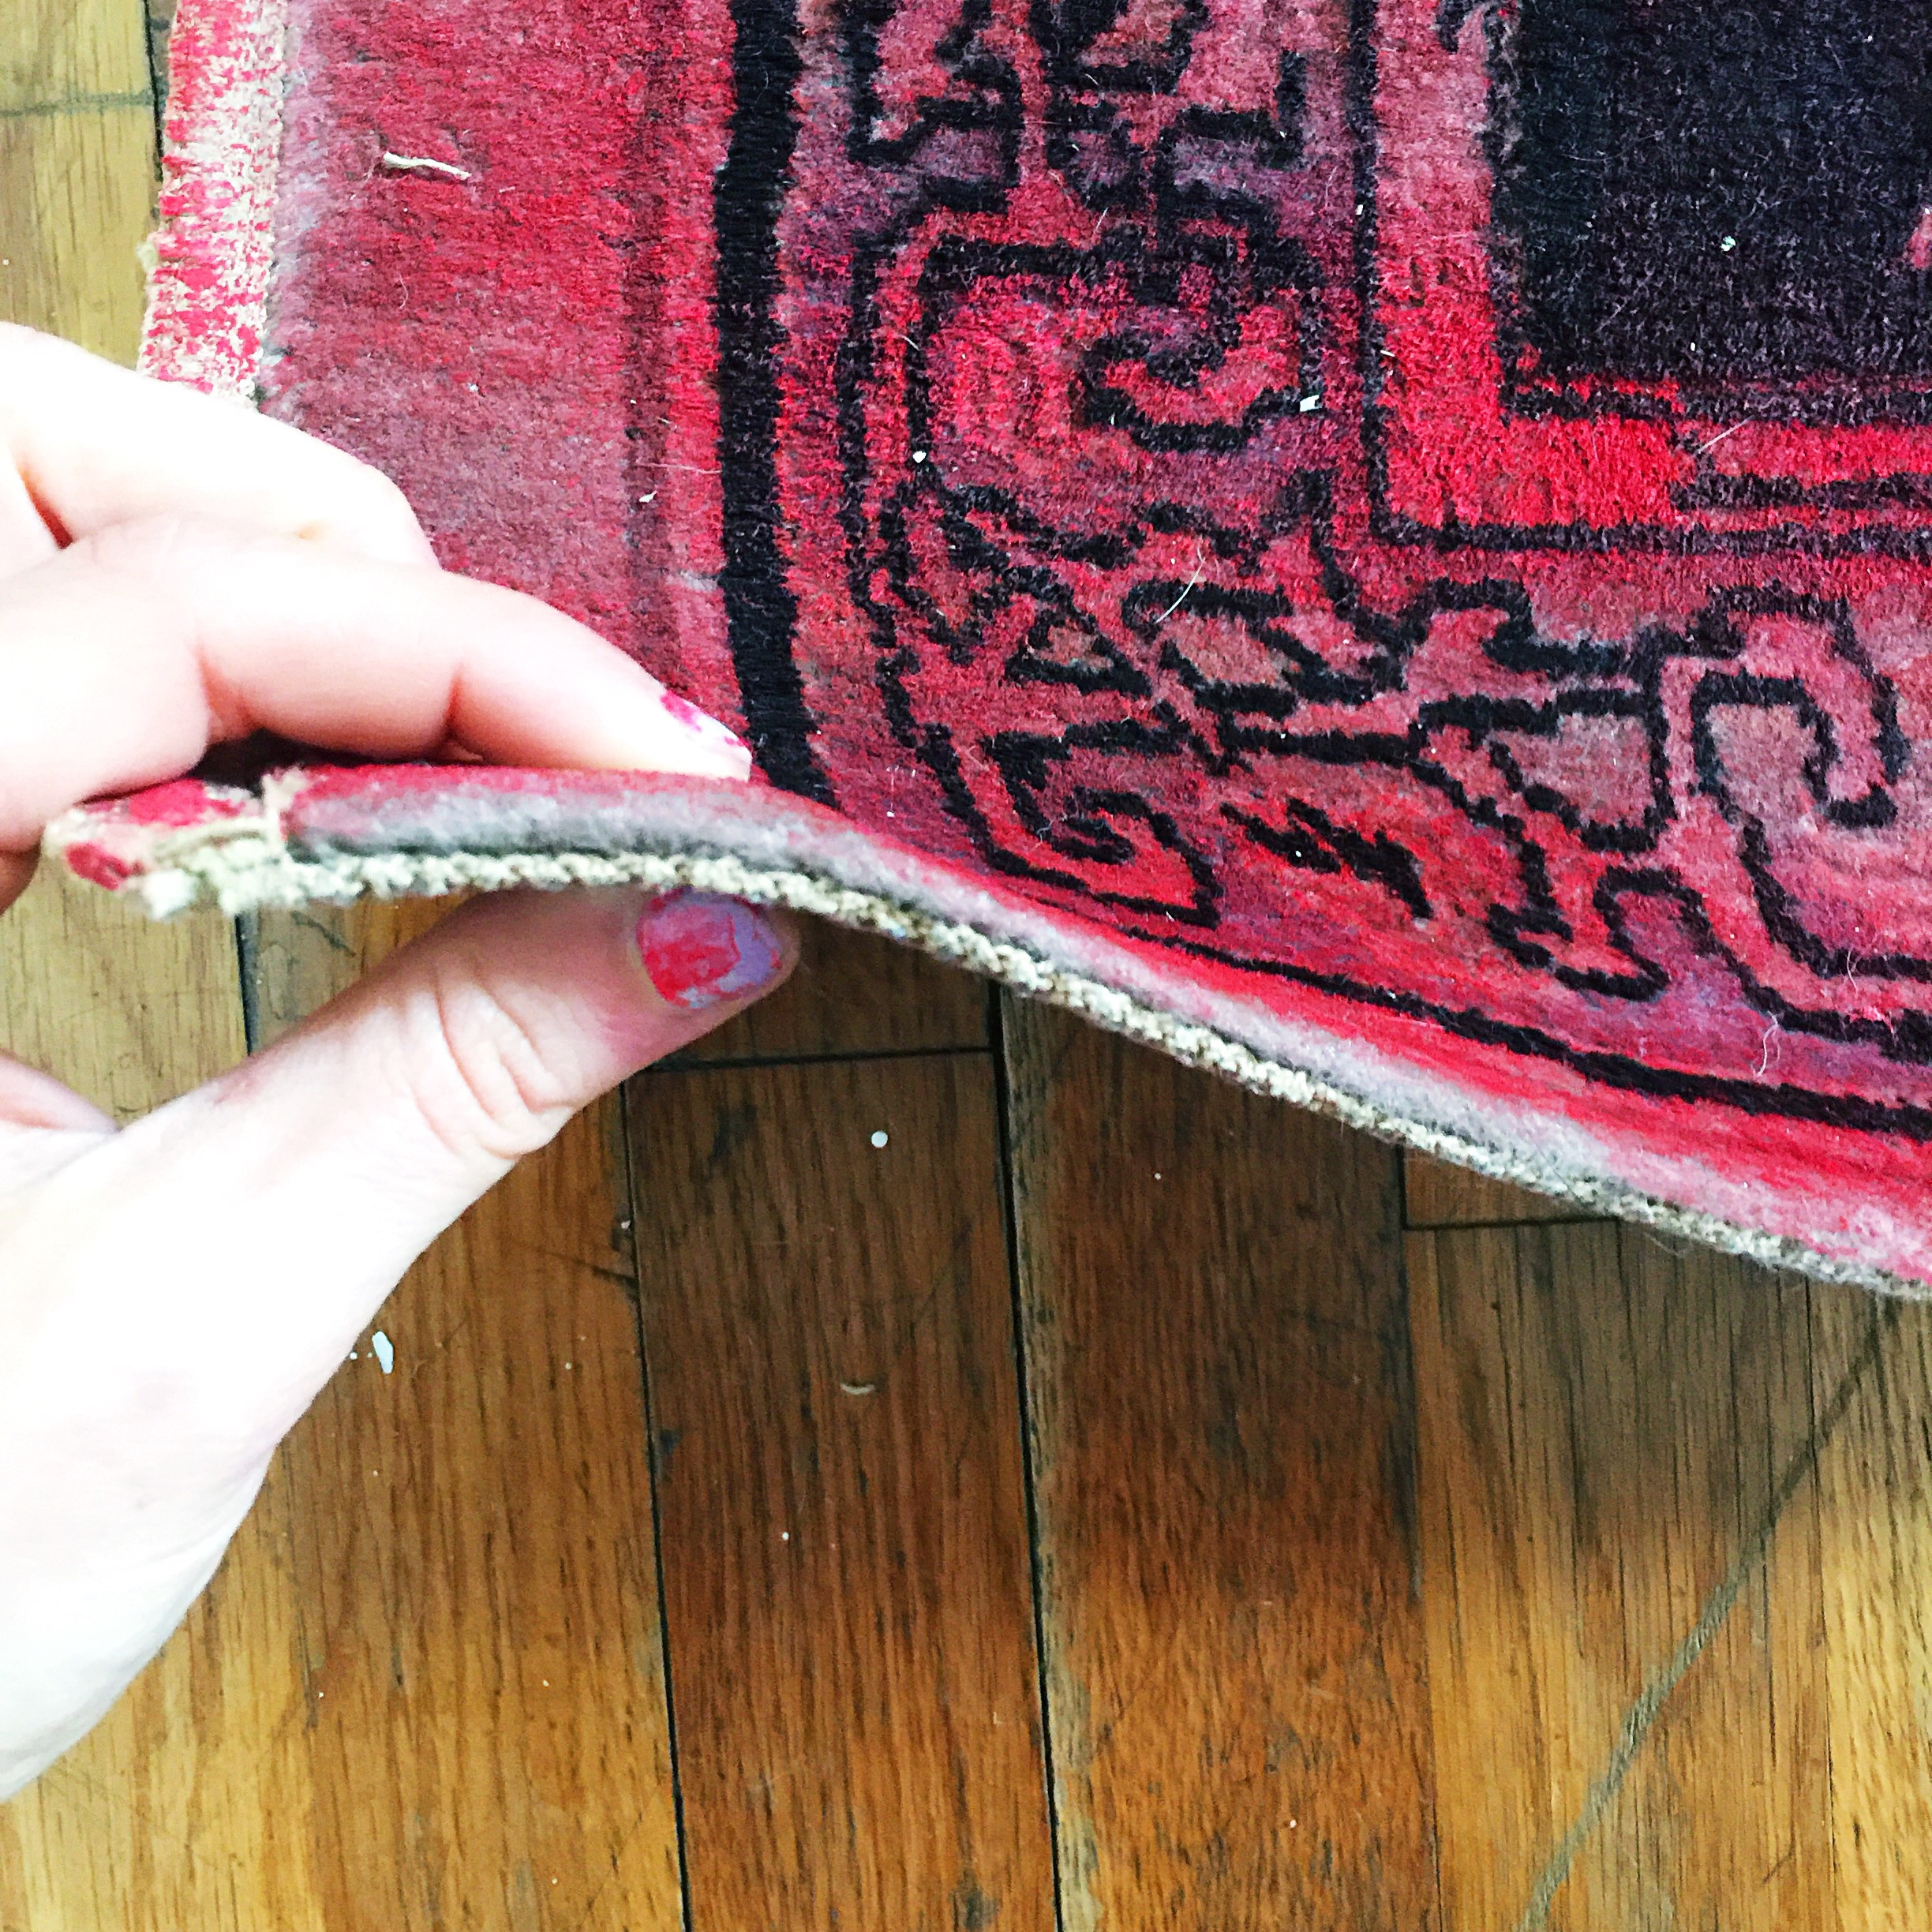 Our rug was an antique and very very low-pile. I attempted rolling but it didn't rub into the carpet like I wanted it to. Feel free to try it.